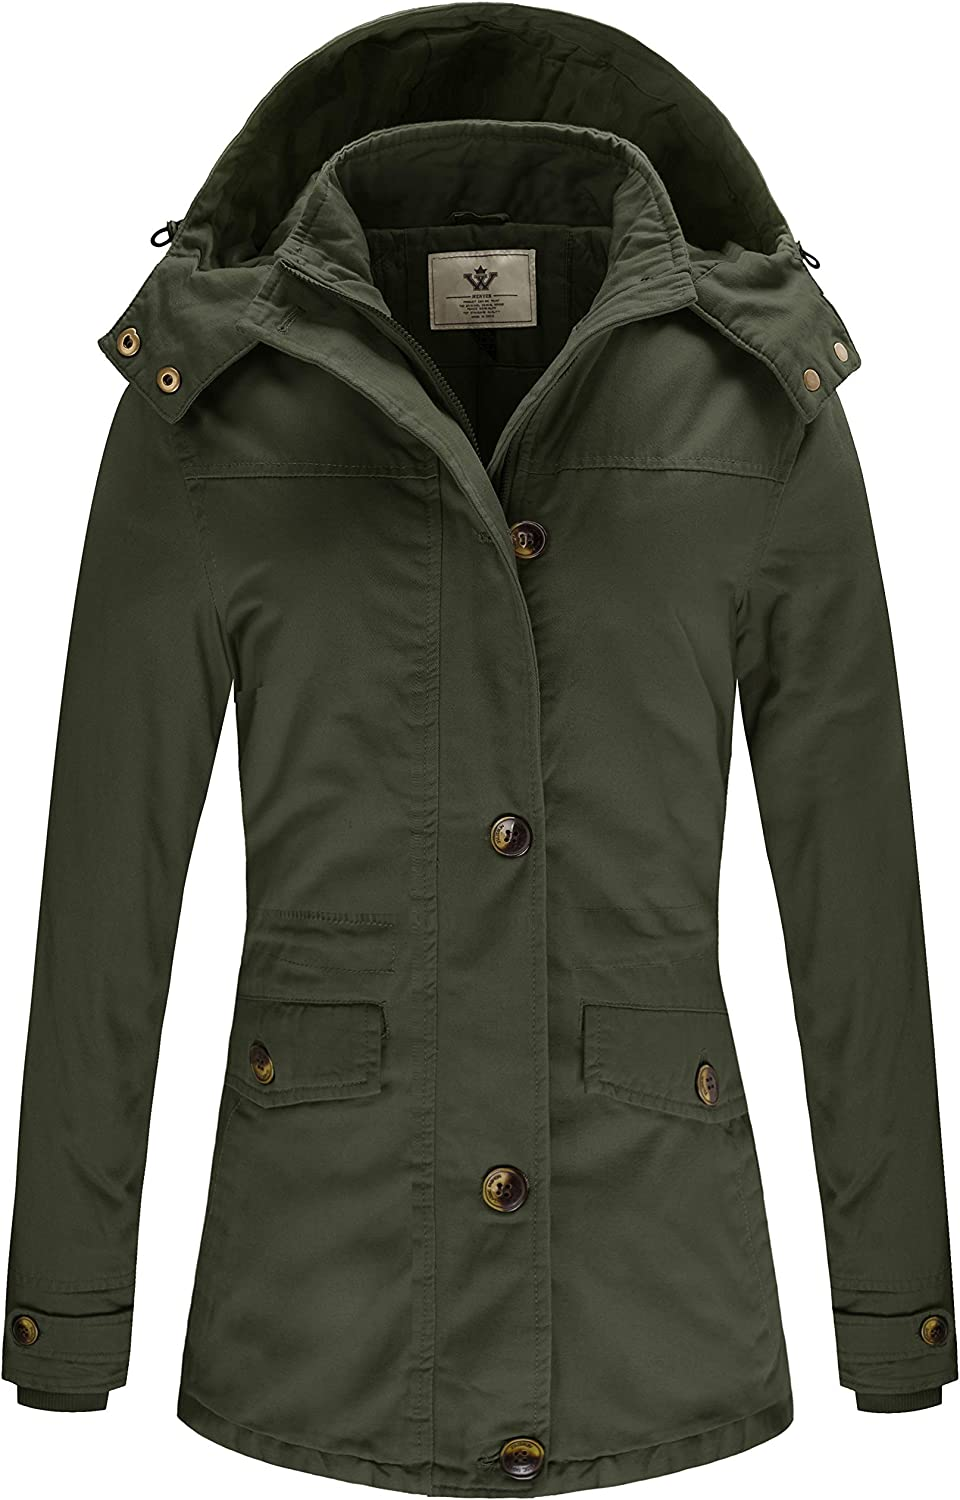 WenVen Women's Winter Warm Thicken Military Parka Jacket with Removable Hood